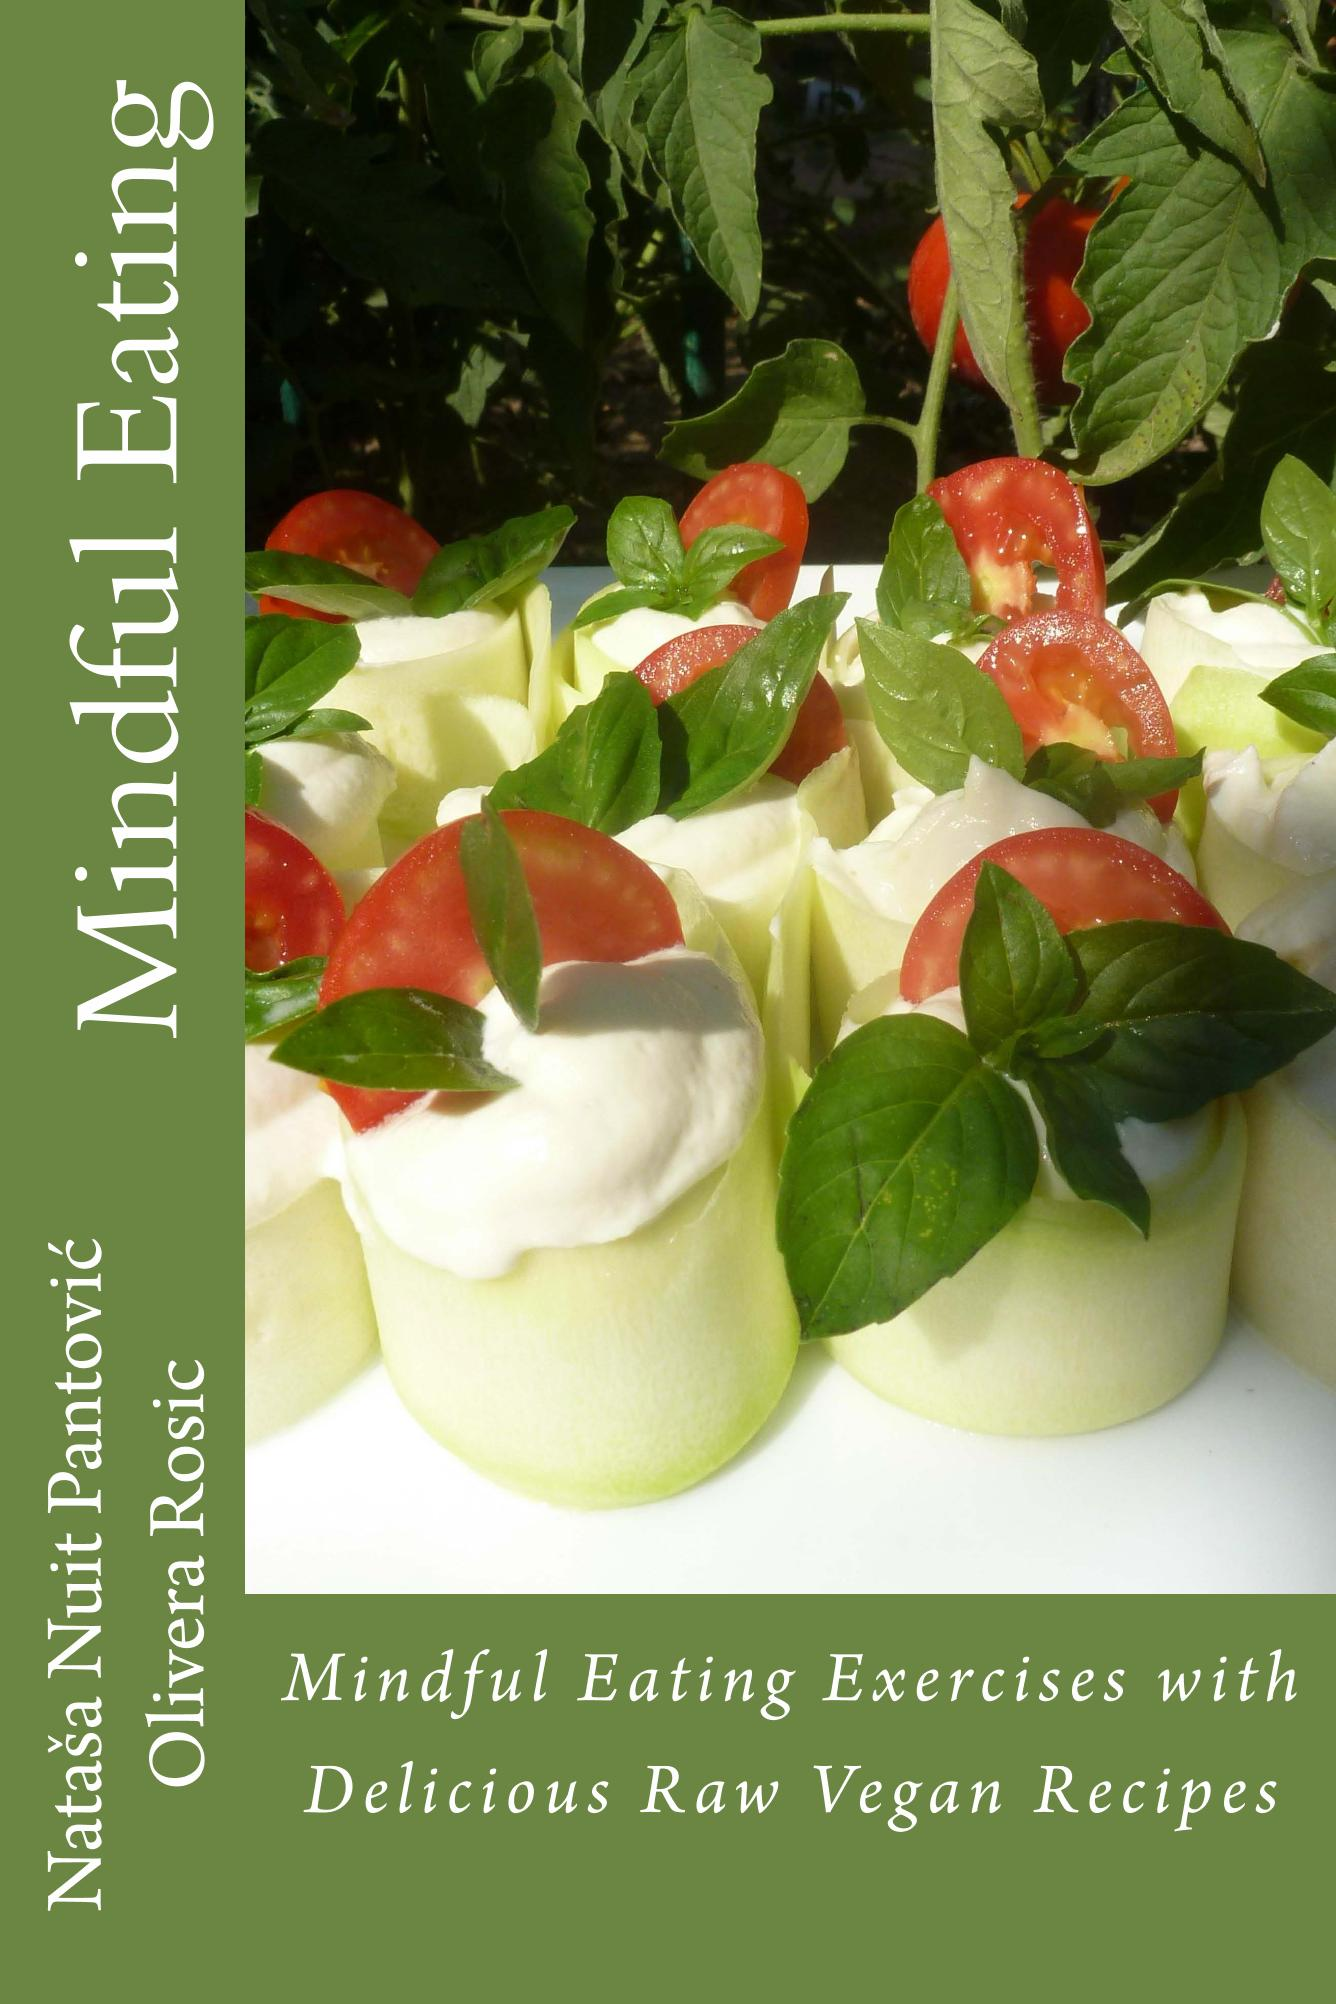 Mindful Eating Book by Nataša Pantović and Olivera Rosić